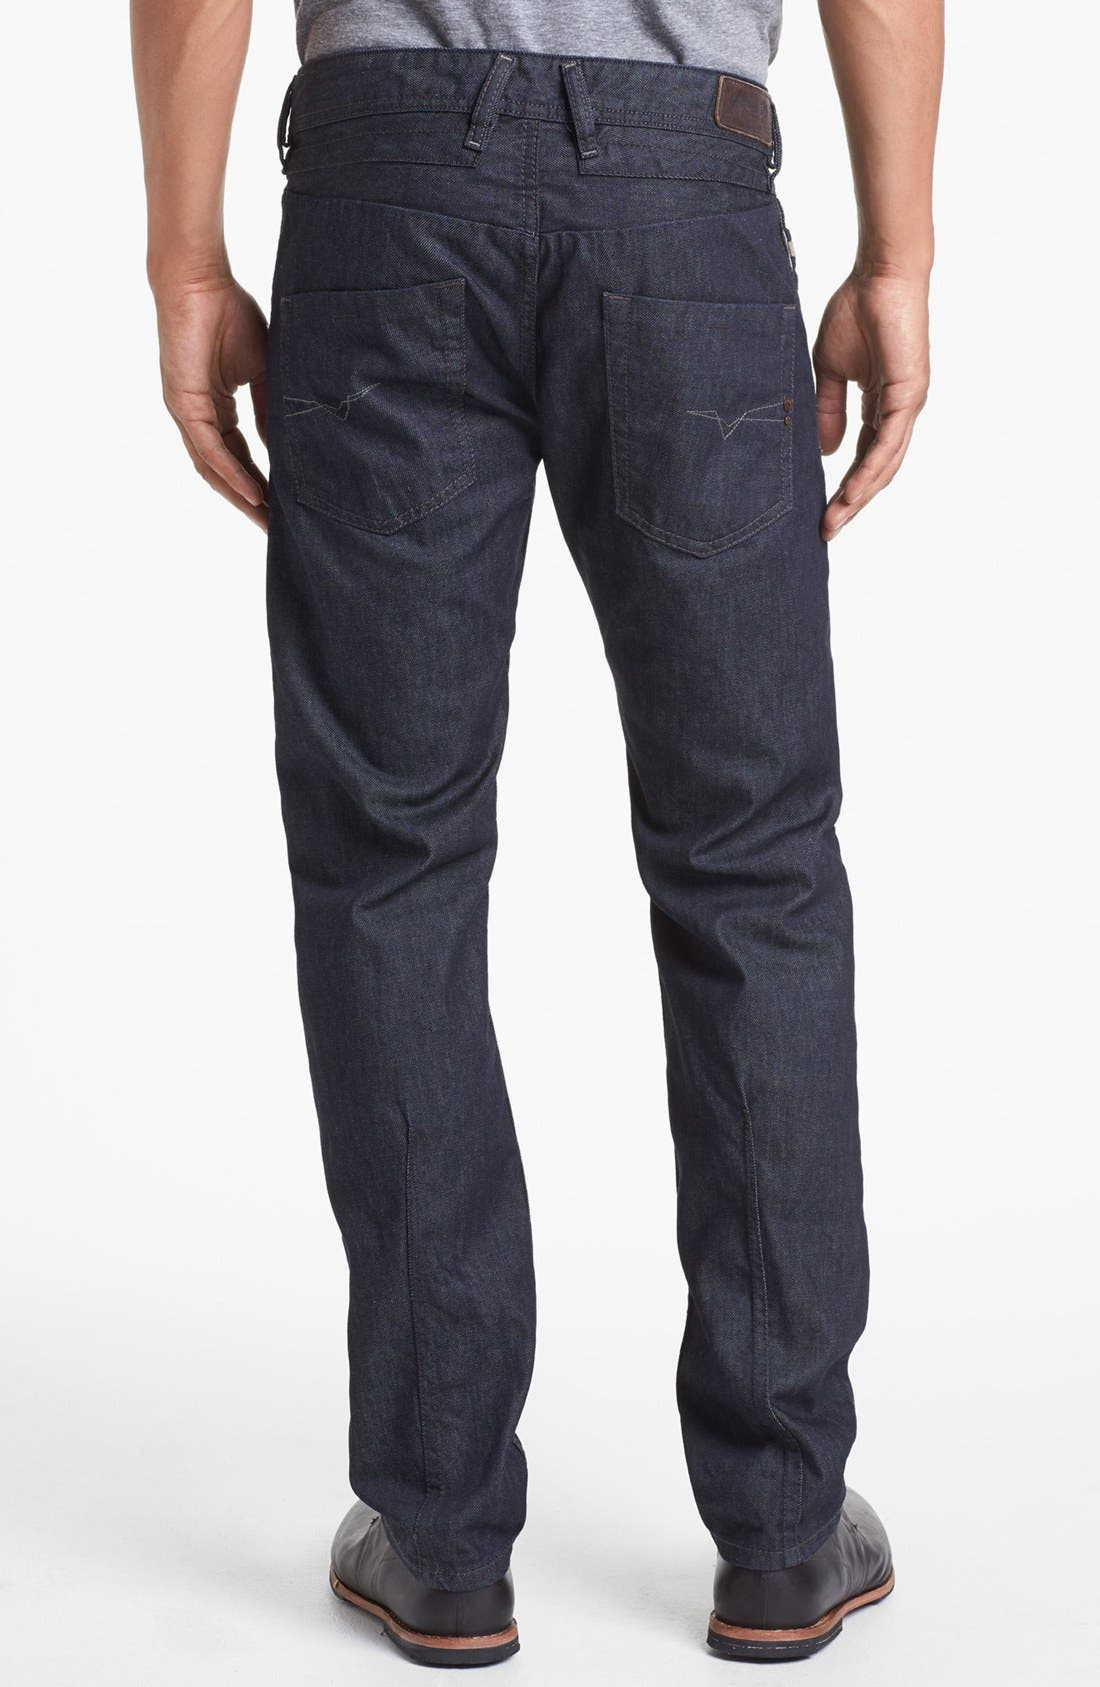 'Belther' Slim Fit Jeans,                             Main thumbnail 1, color,                             400